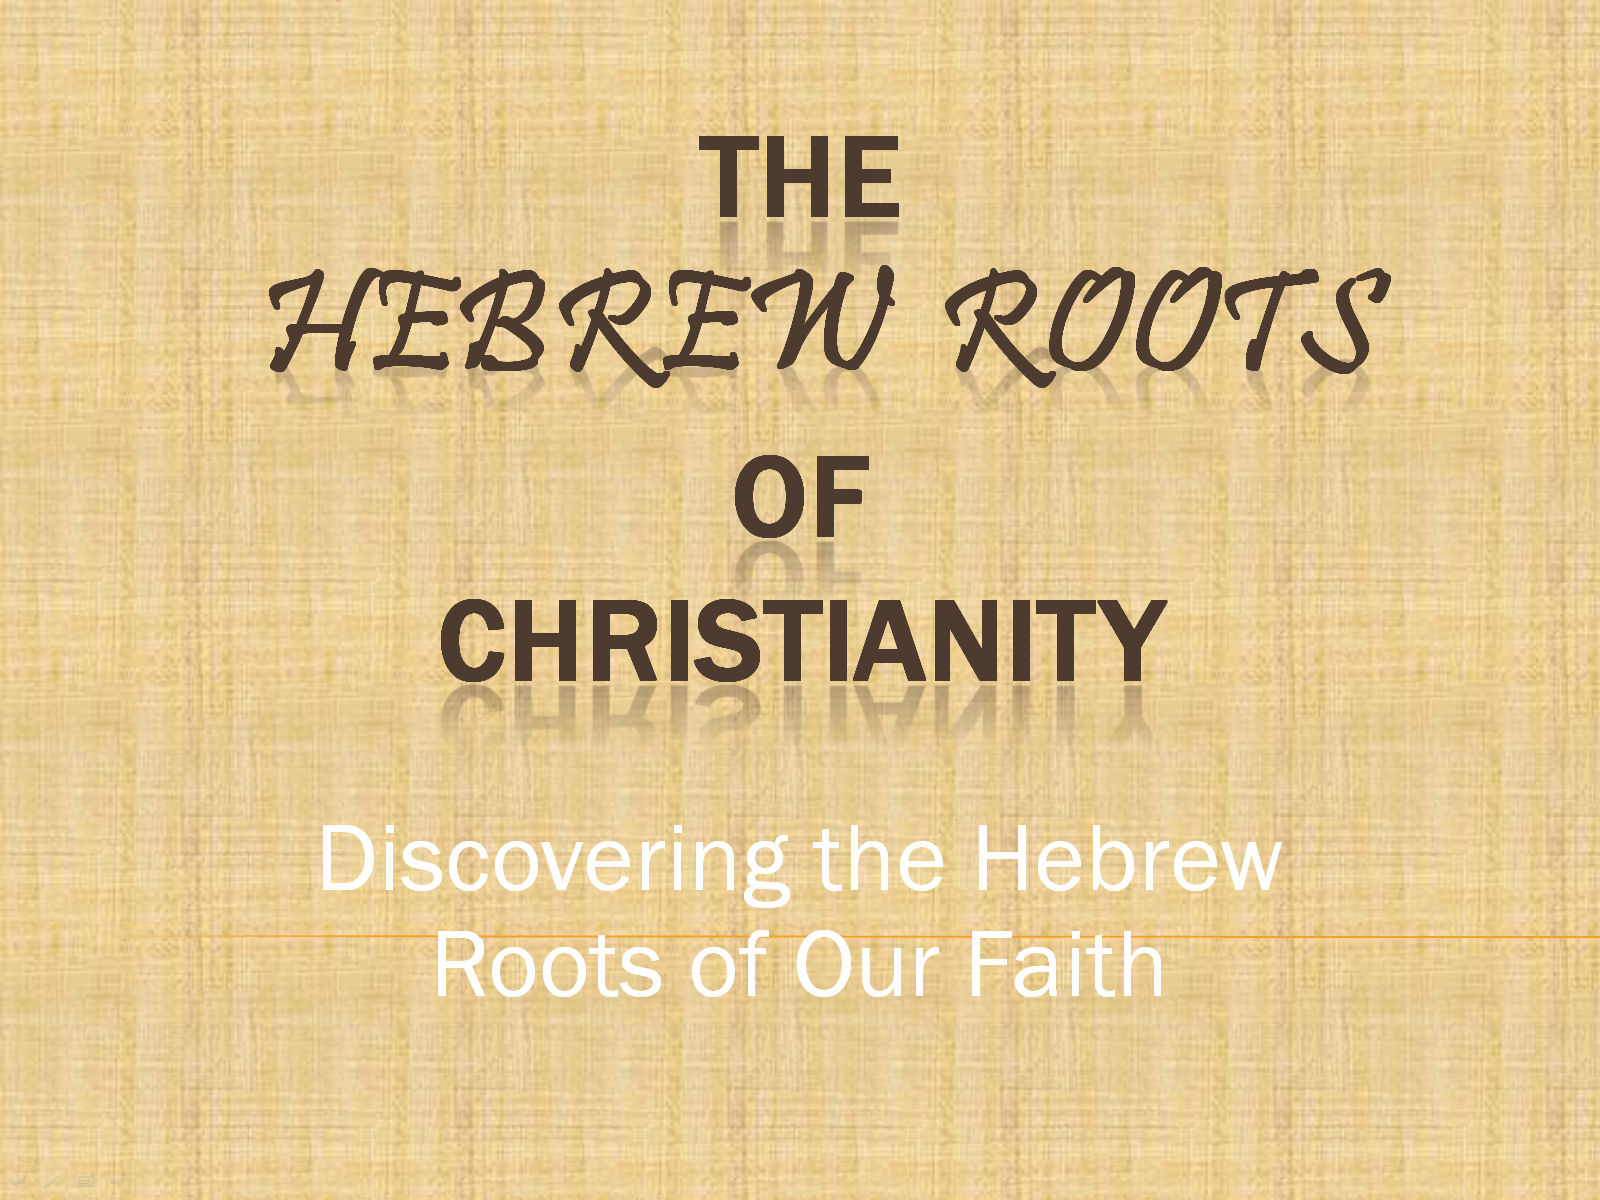 Hebrew Roots of Christianity Video